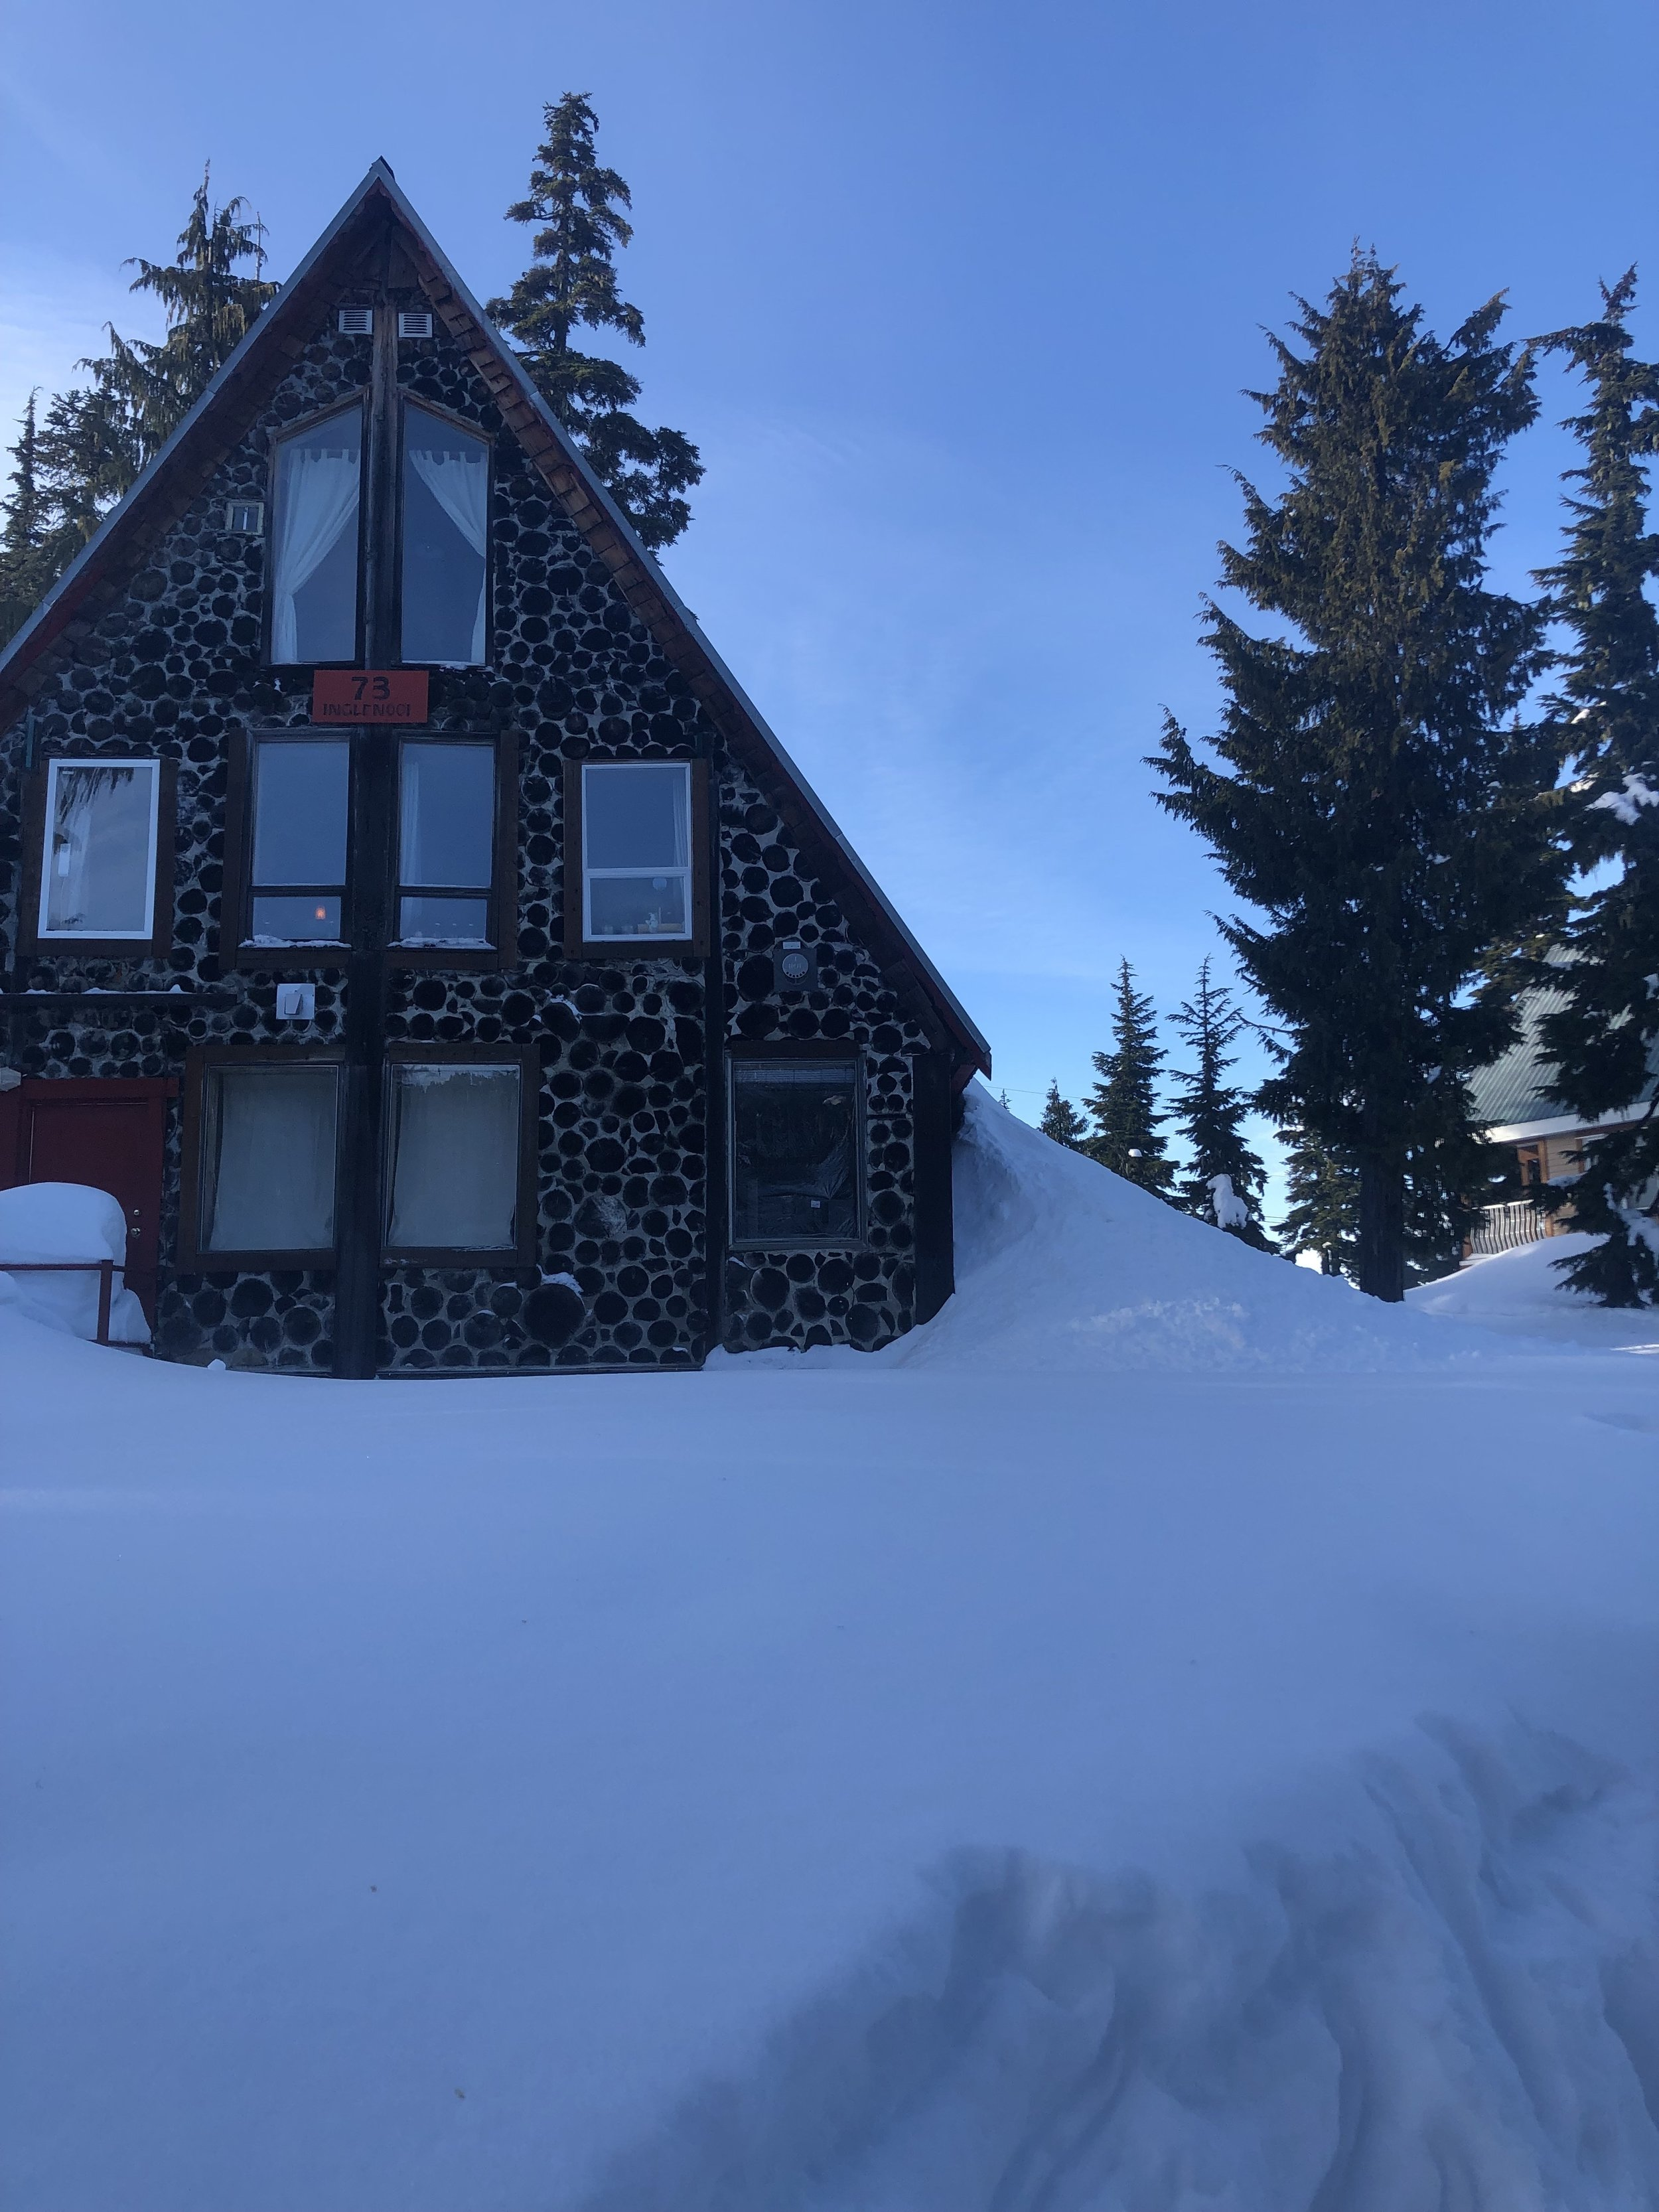 My favourite chalet I saw on the mountain